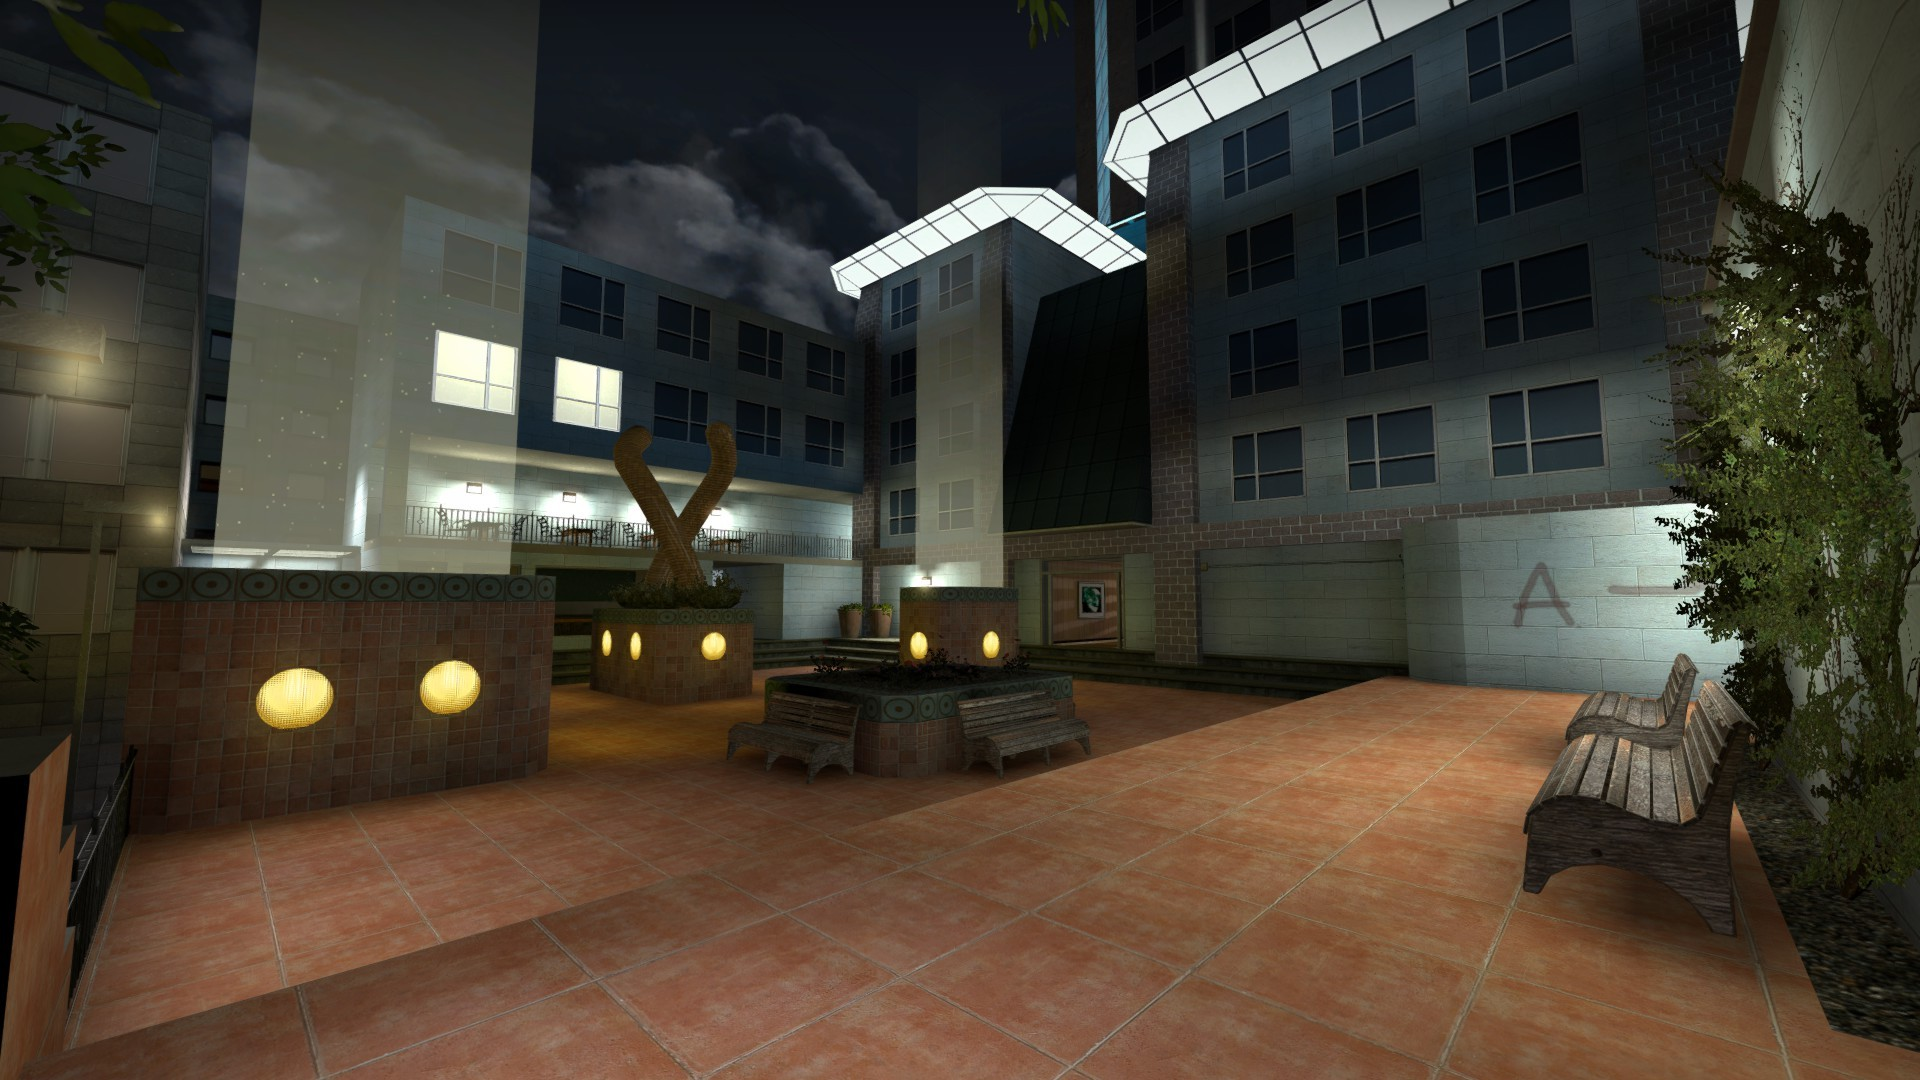 Counter-Strike: Global Offensive Map - de_nightfever_beta screenshot 3